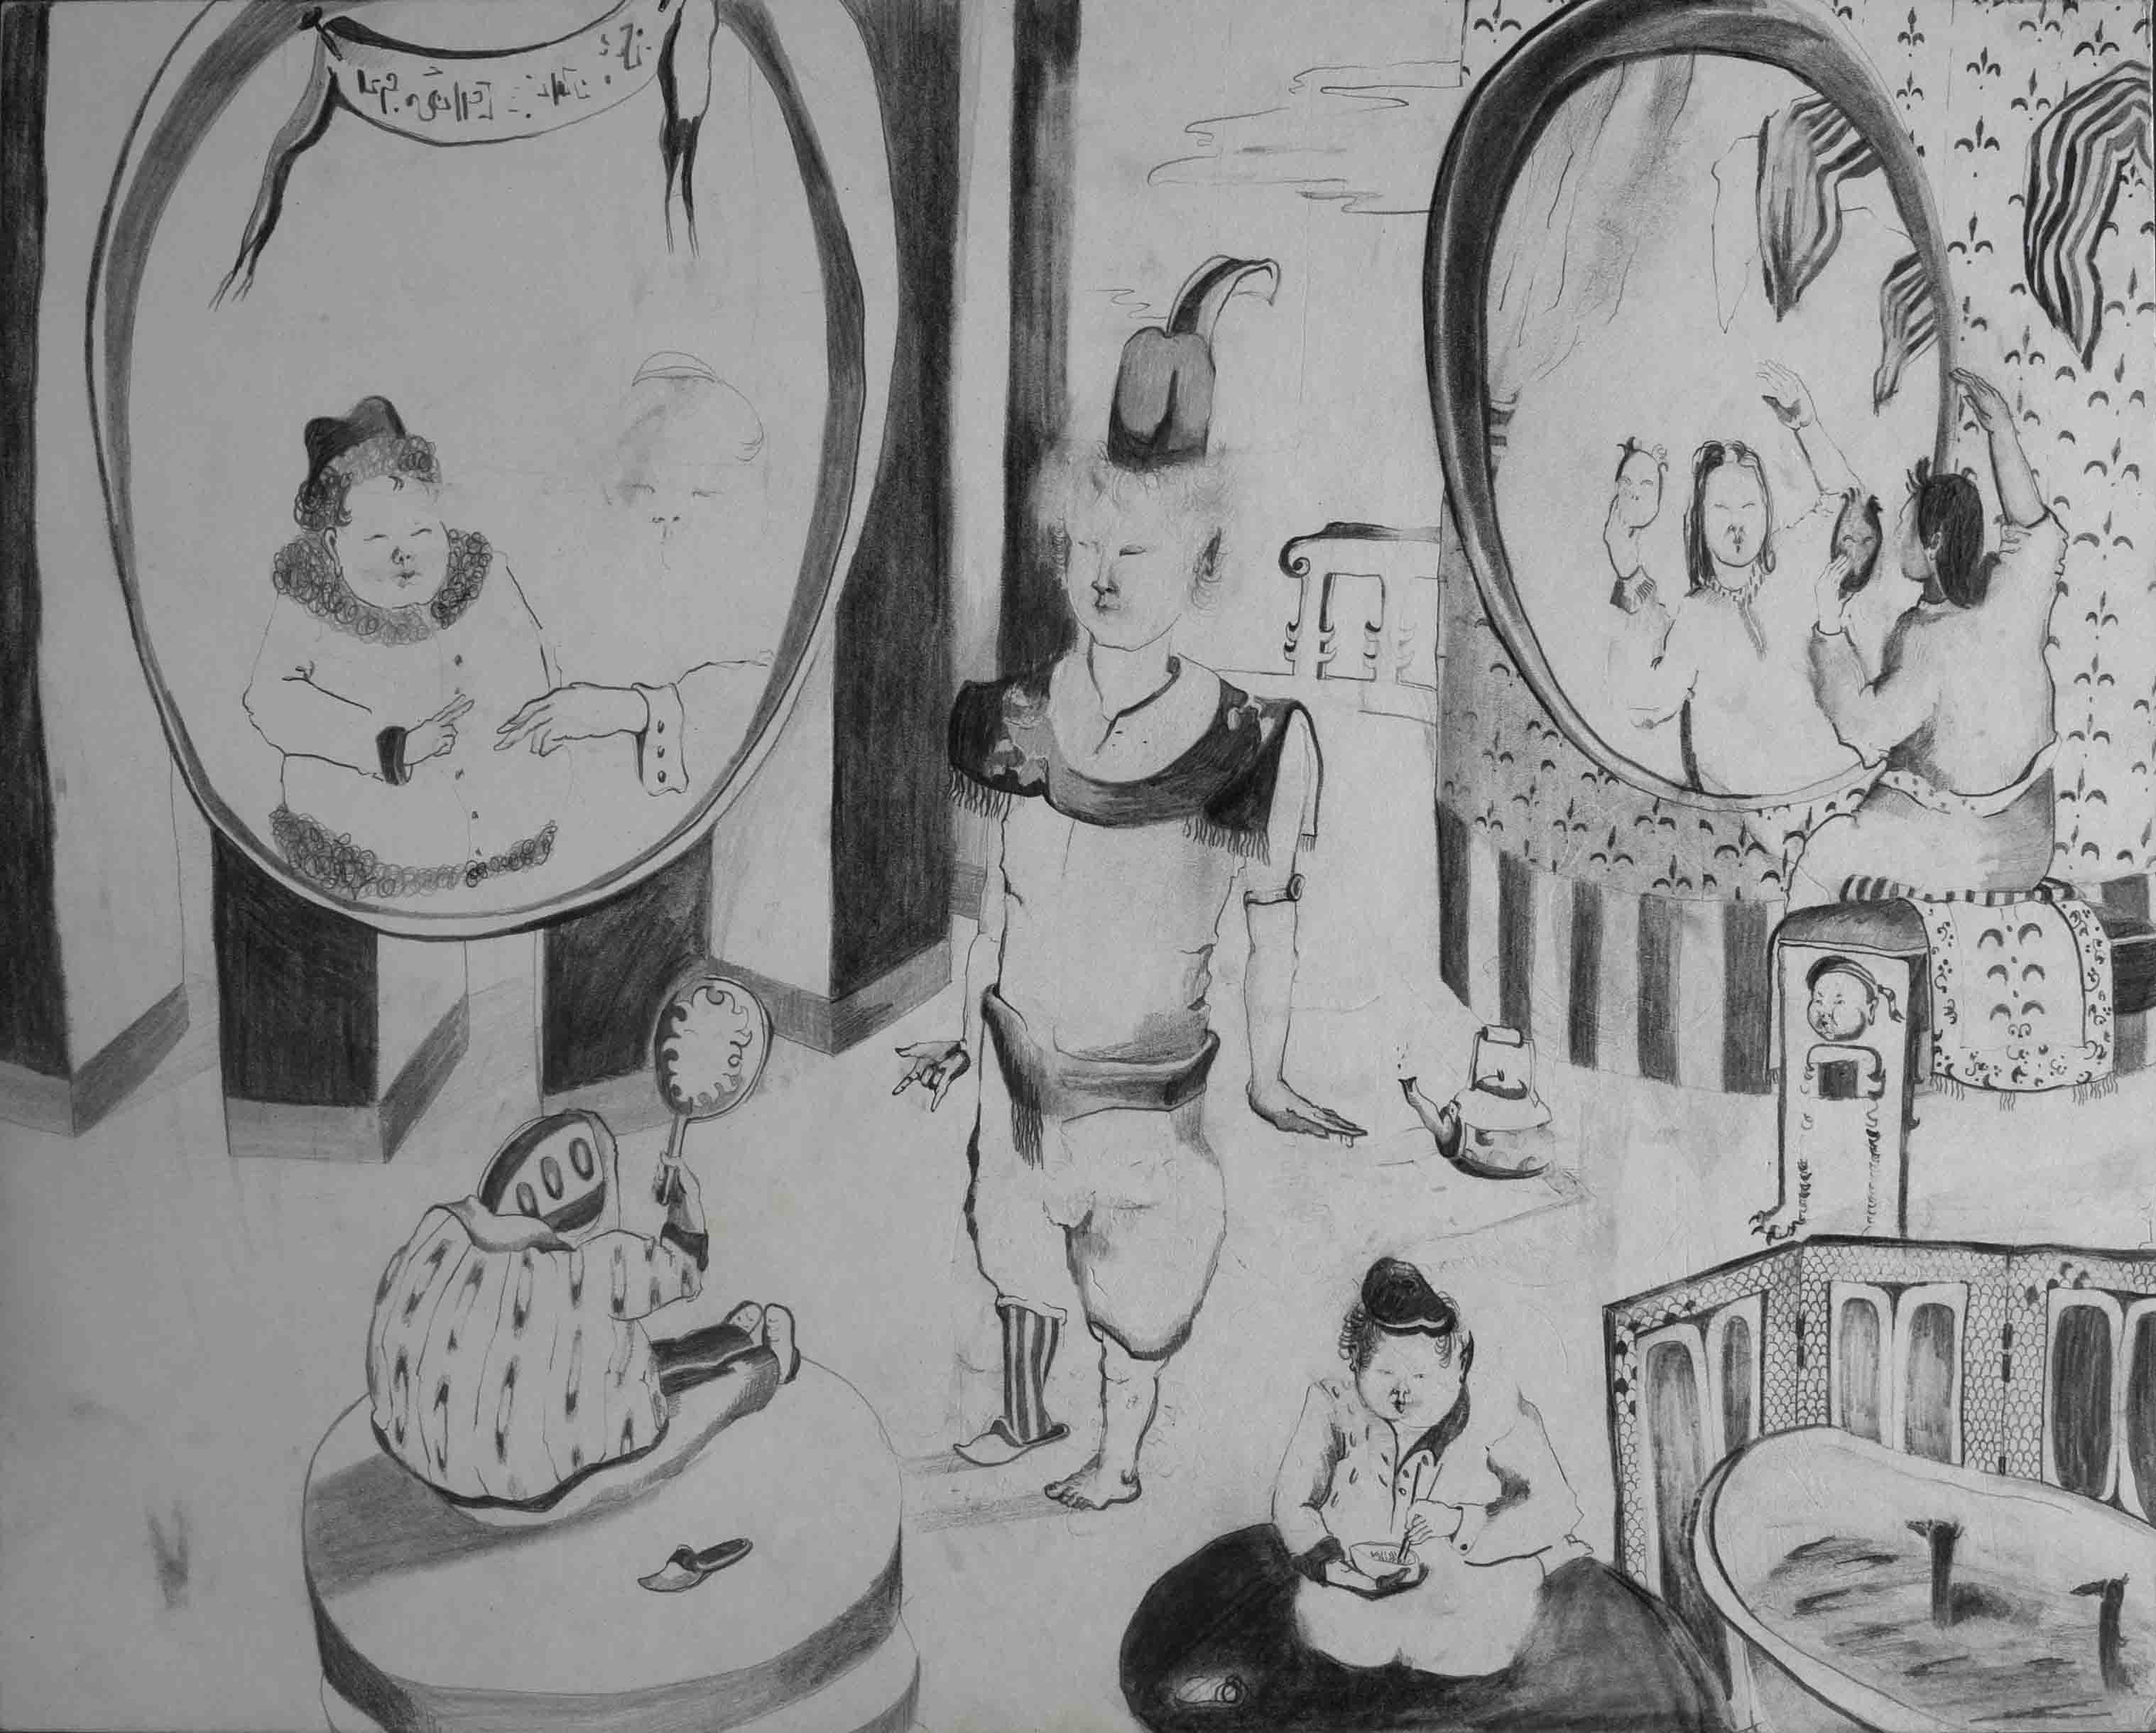 Mirror Mirror on the Wall, 45 x 55 cm, Pencil on Passpartout, 2009